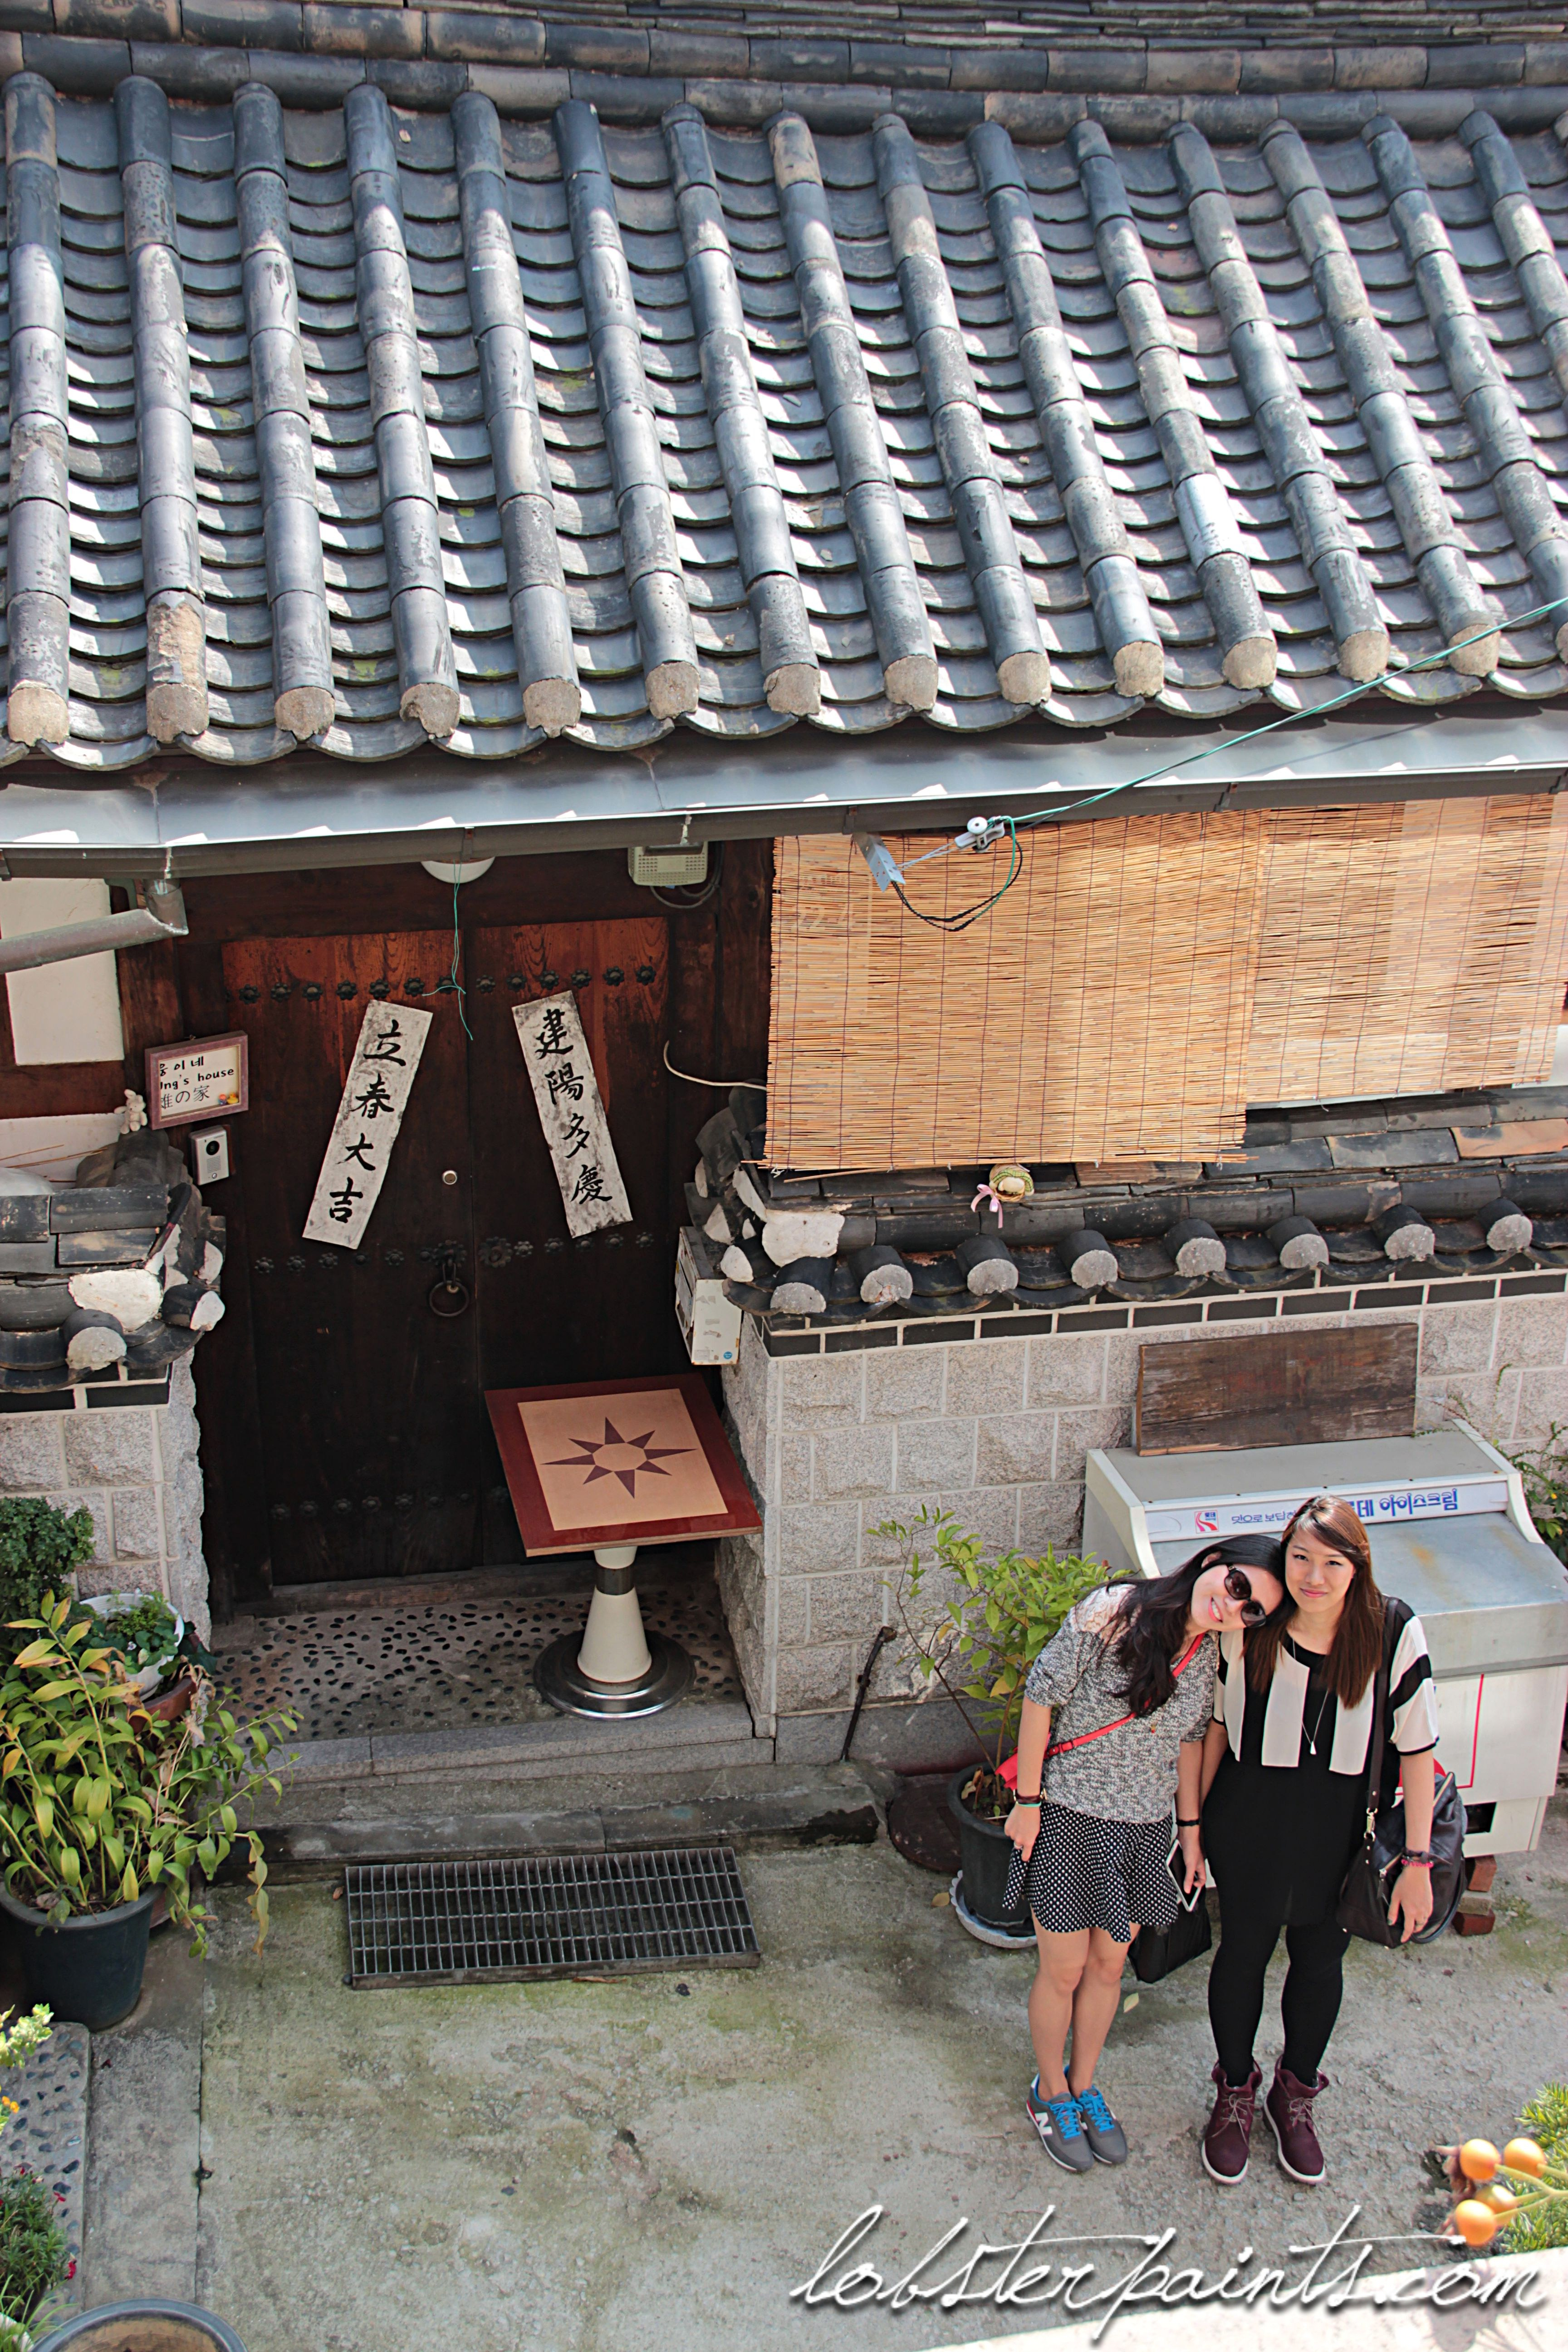 30 Sep 2014: Bukchon Hanok Village 북촌한옥마을  | Seoul, South Korea